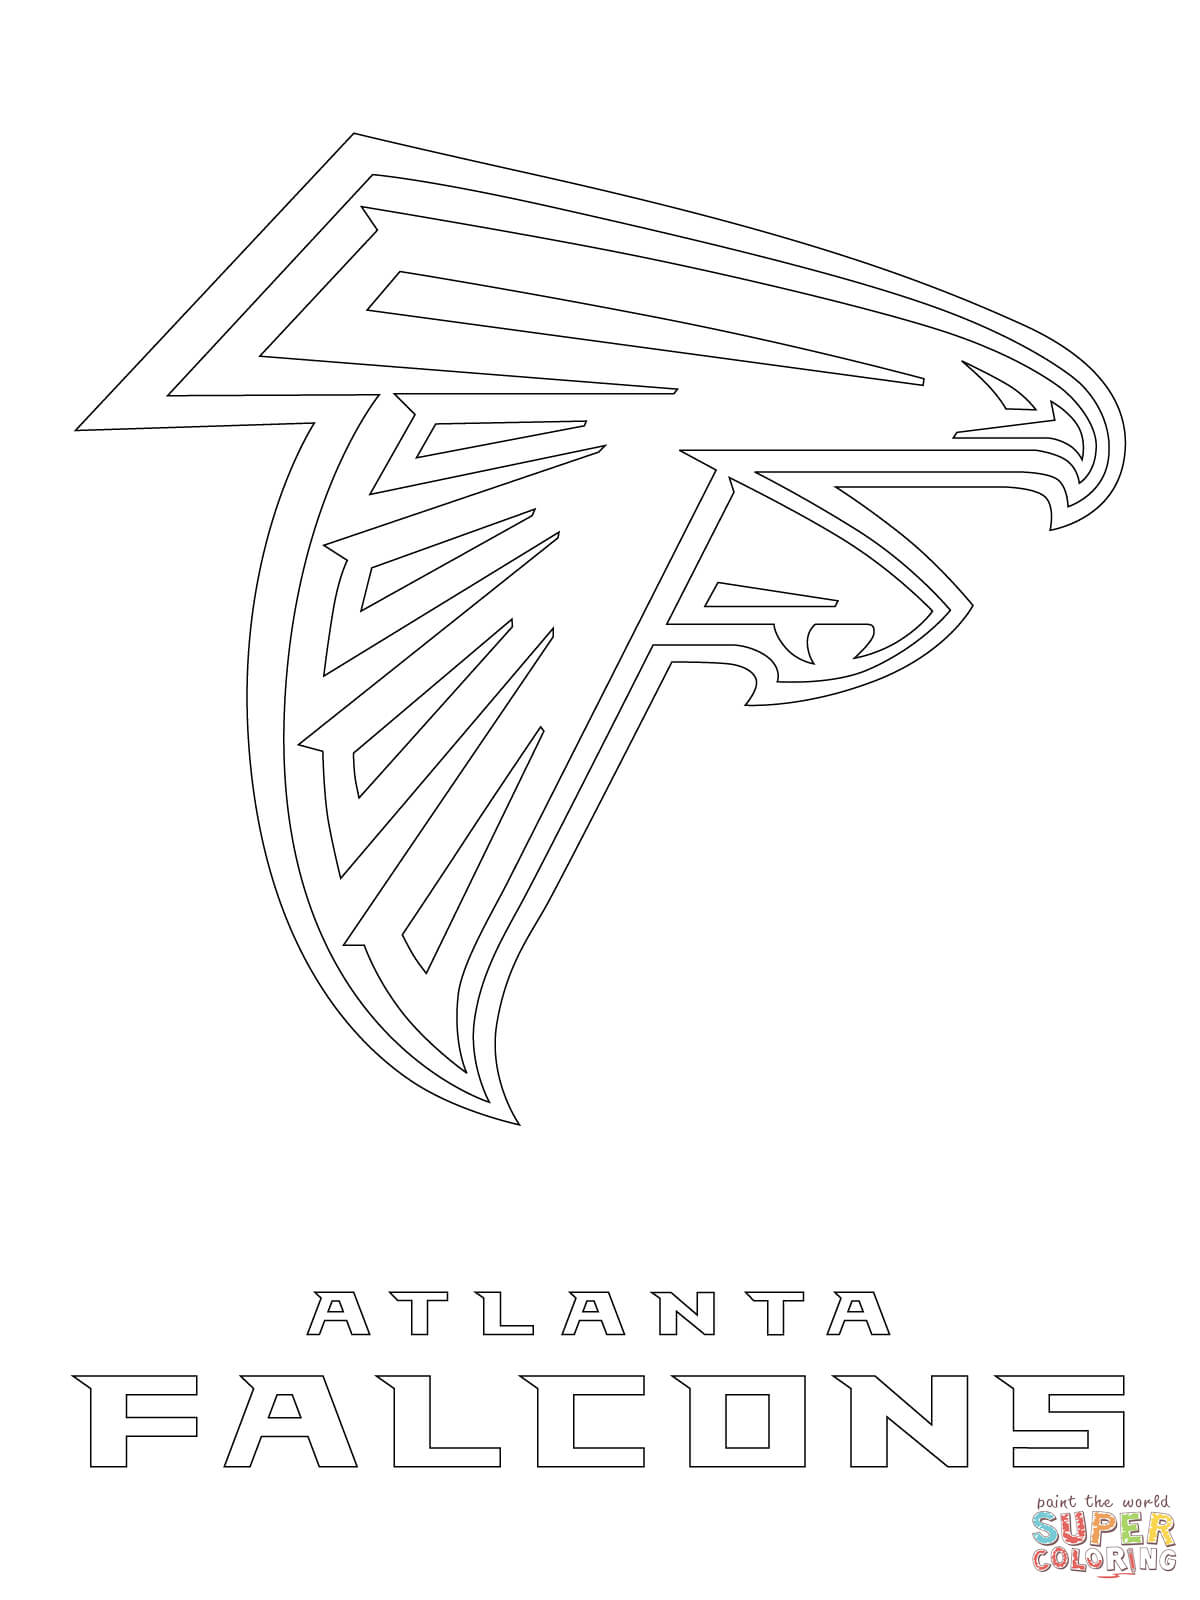 Atlanta Falcons Logo coloring page | Free Printable Coloring Pages